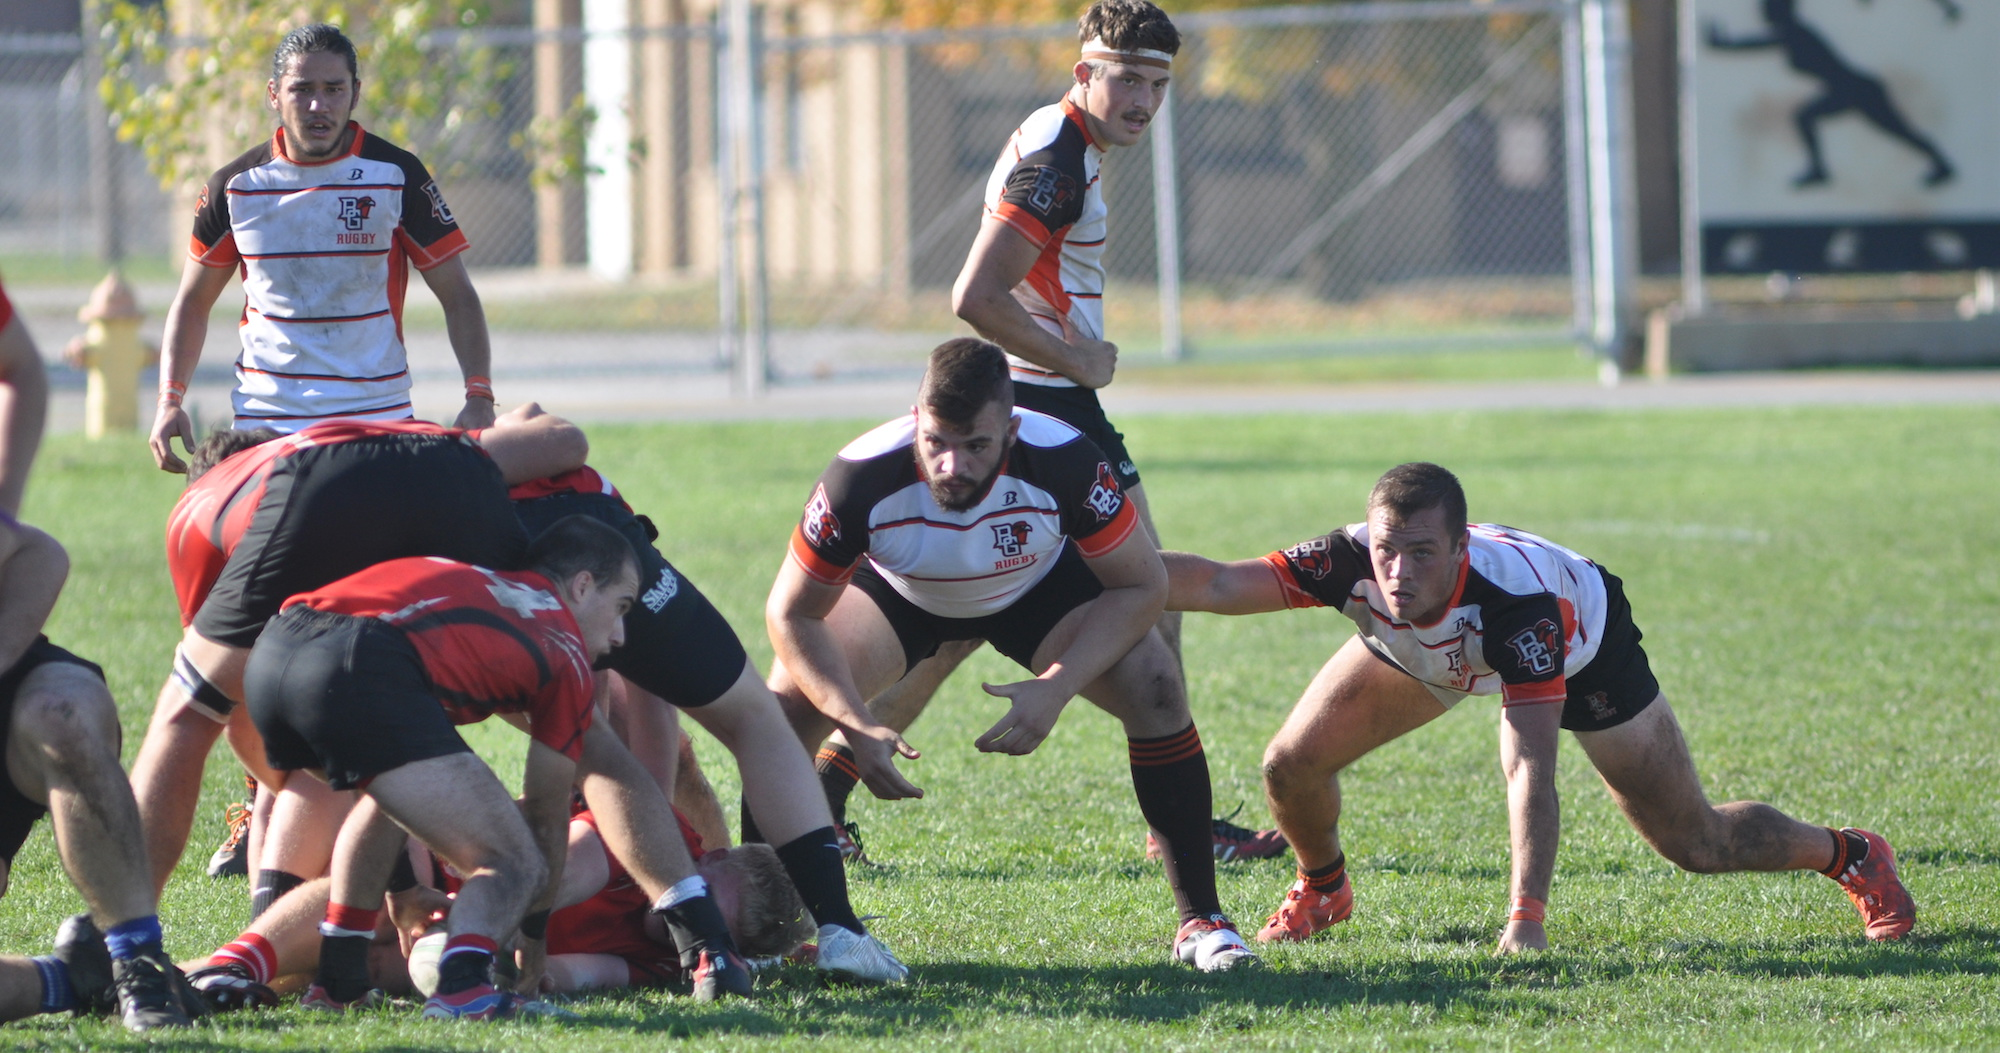 Bowling Green sets the defensive line v Cincinnati in the MAC Rugby Conference final November 6, 2016.